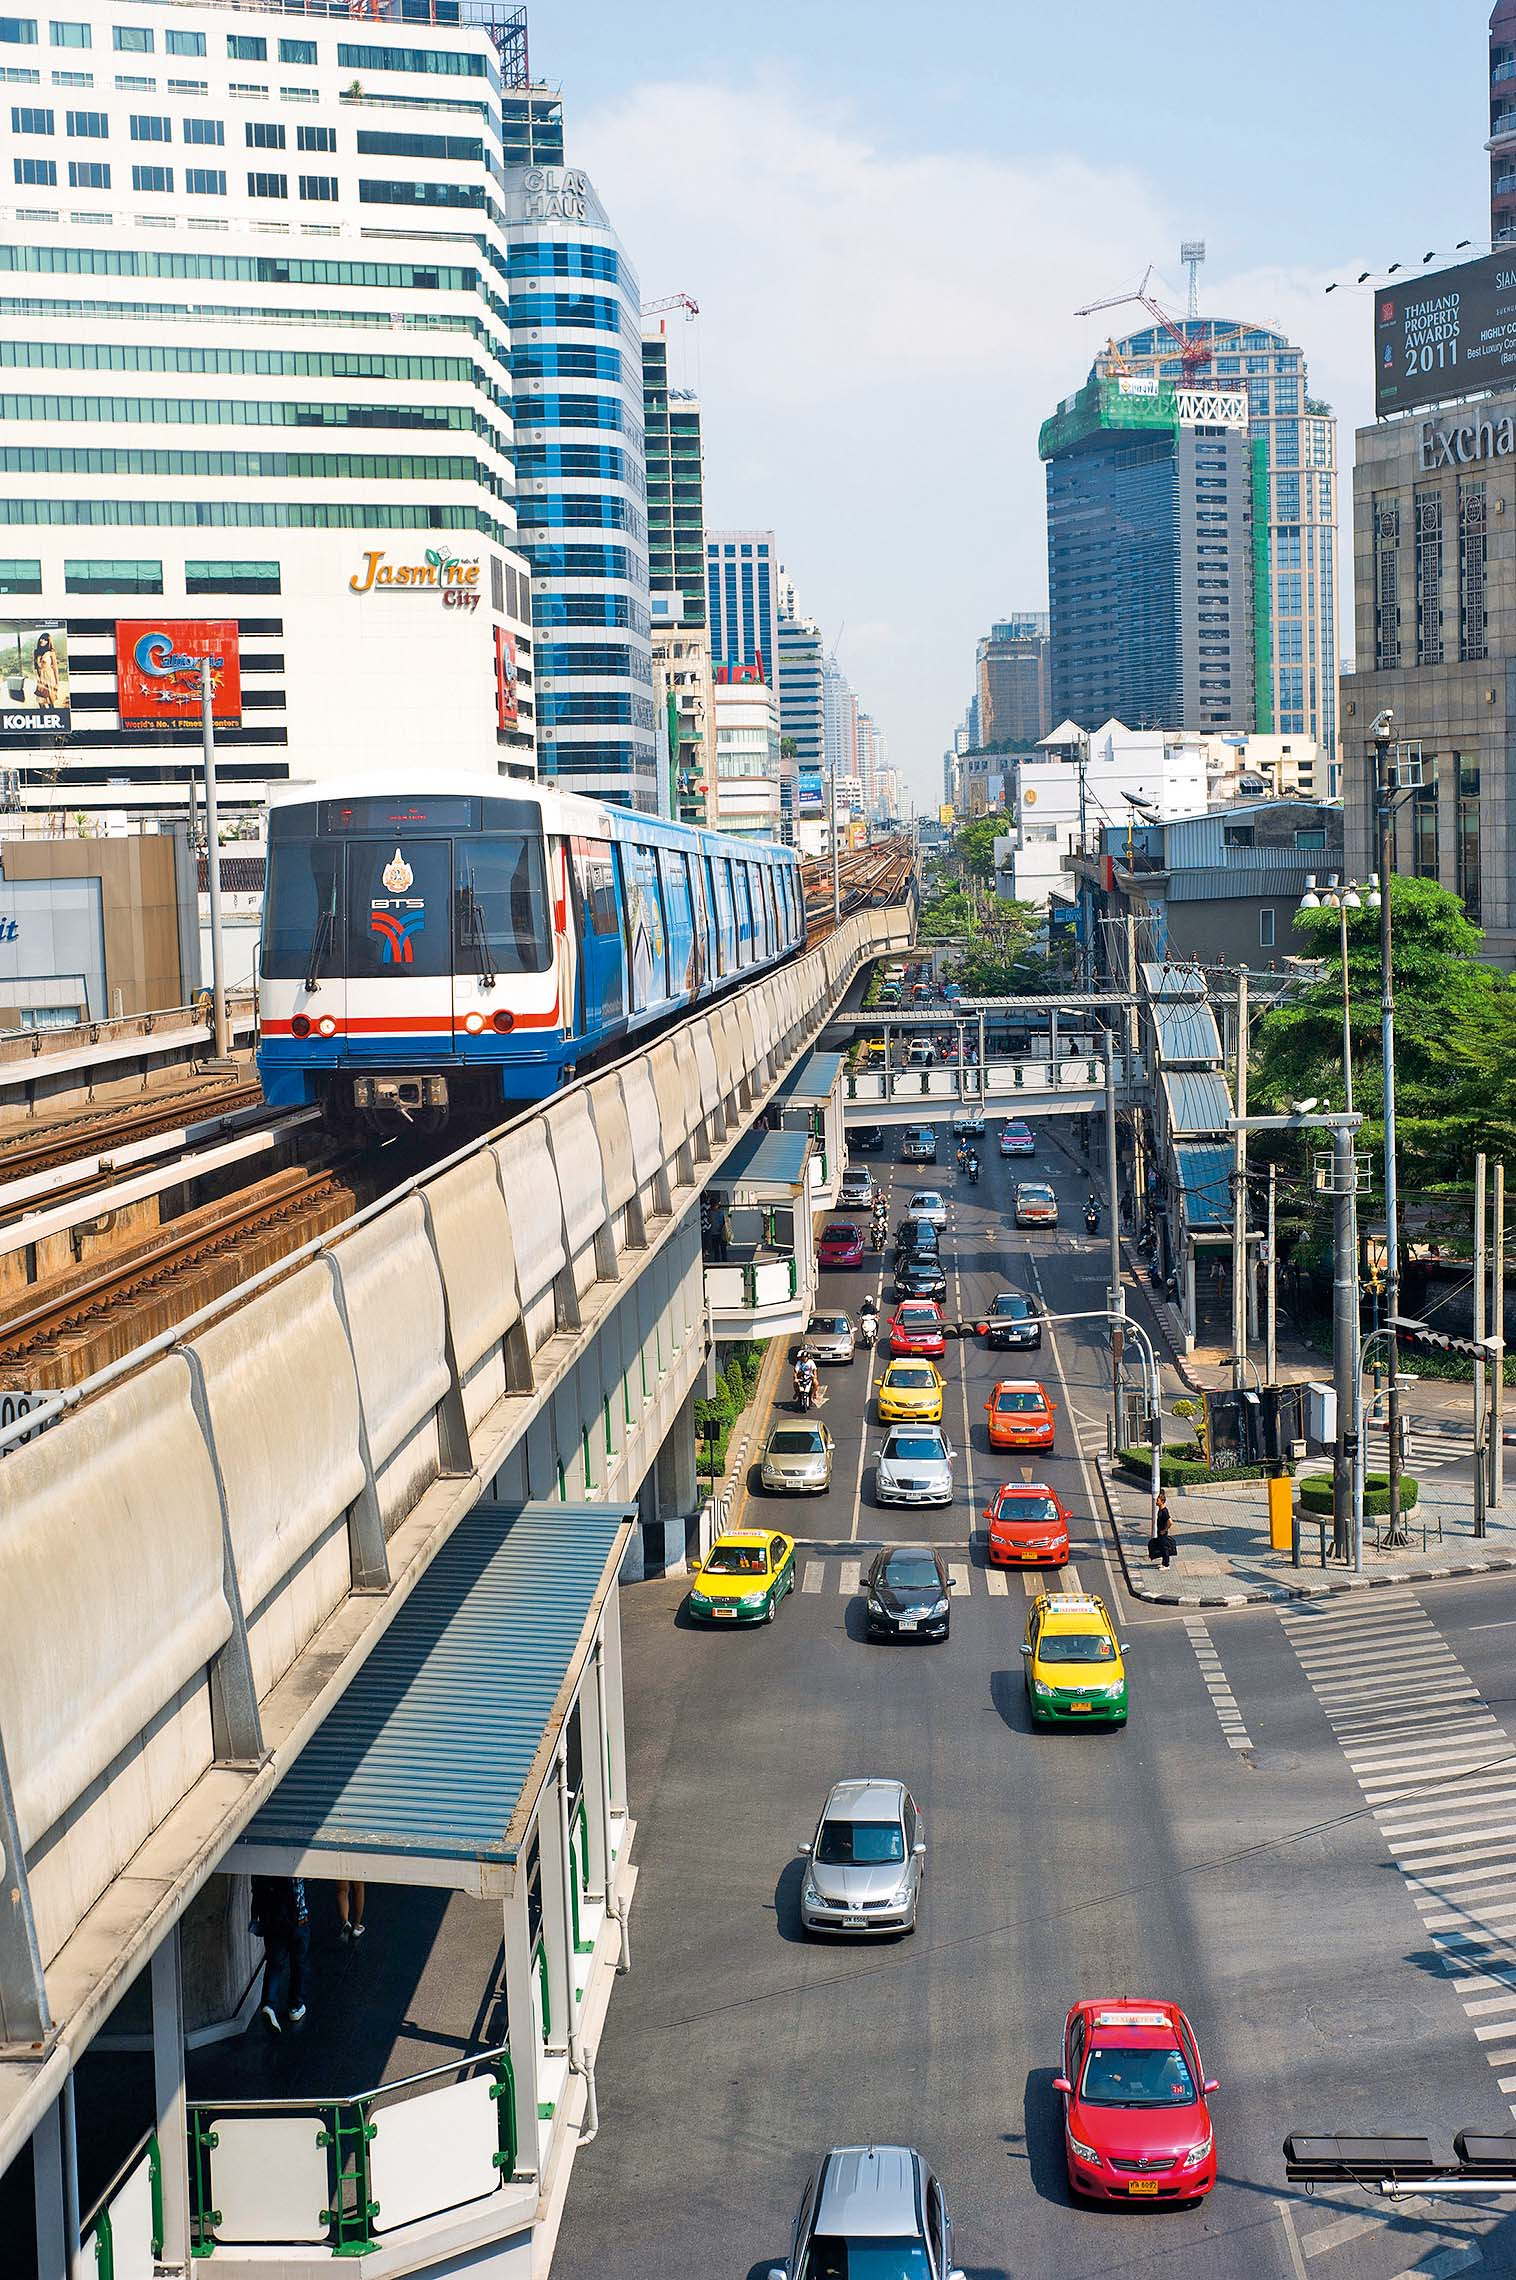 BTS Skytrain in Bangkok. The Bangkok Mass Transit System, commonly known as the BTS Skytrain, is an elevated rapid transit system in Bangkok. The system consists of 32 stations along two lines, Image: 128759681, License: Rights-managed, Restrictions: , Model Release: no, Credit line: Profimedia, Alamy